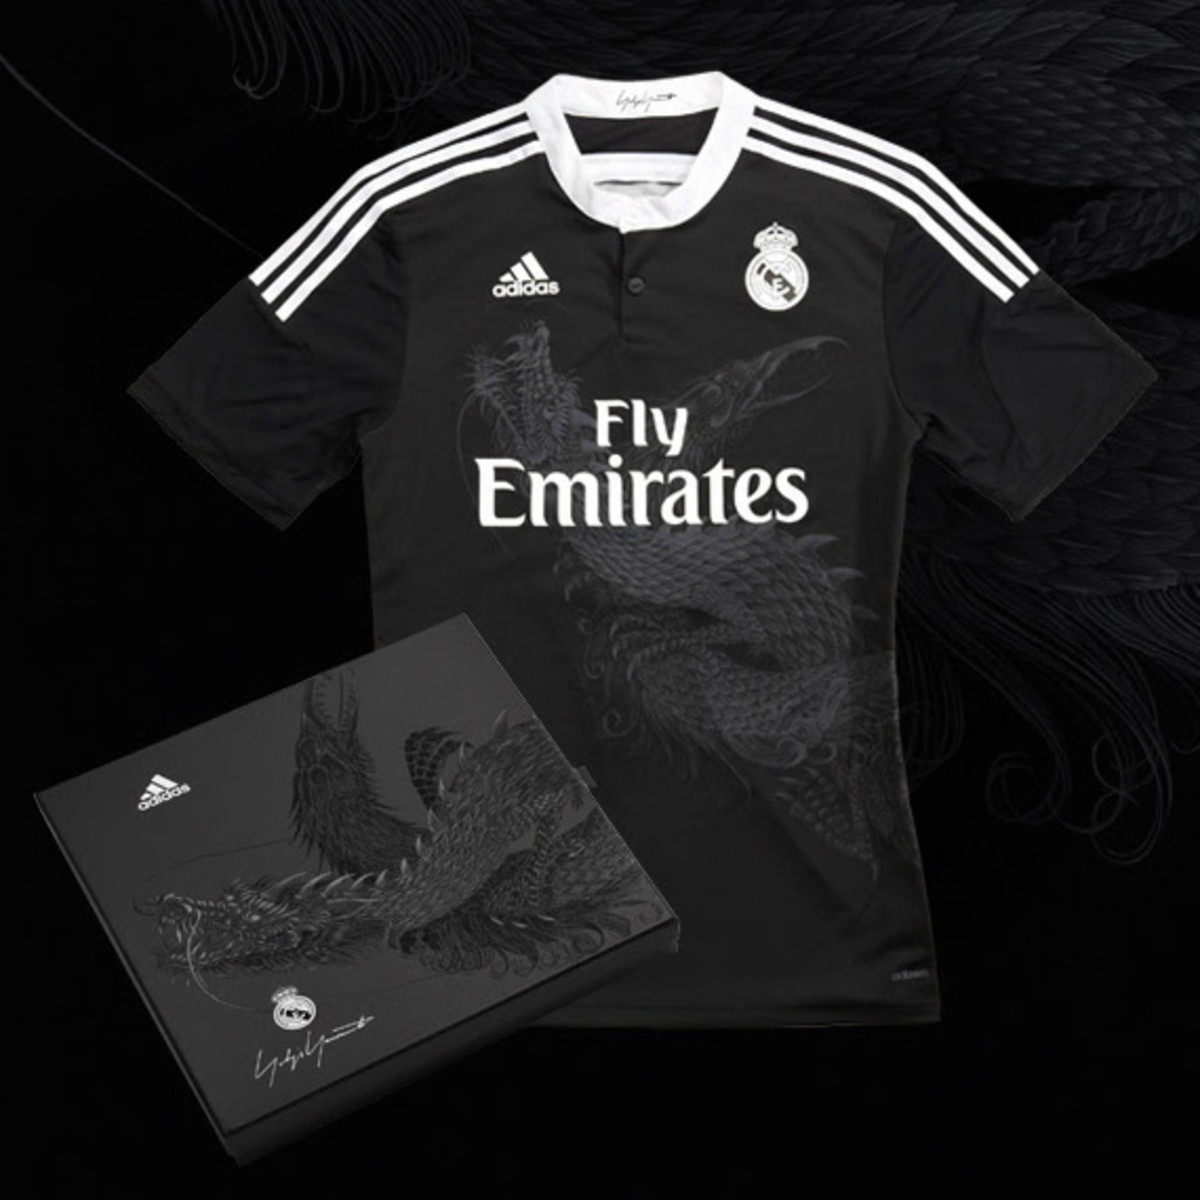 huge selection of c6256 43320 Yohji Yamamoto x adidas - 2014-2015 Real Madrid Third Kit ...